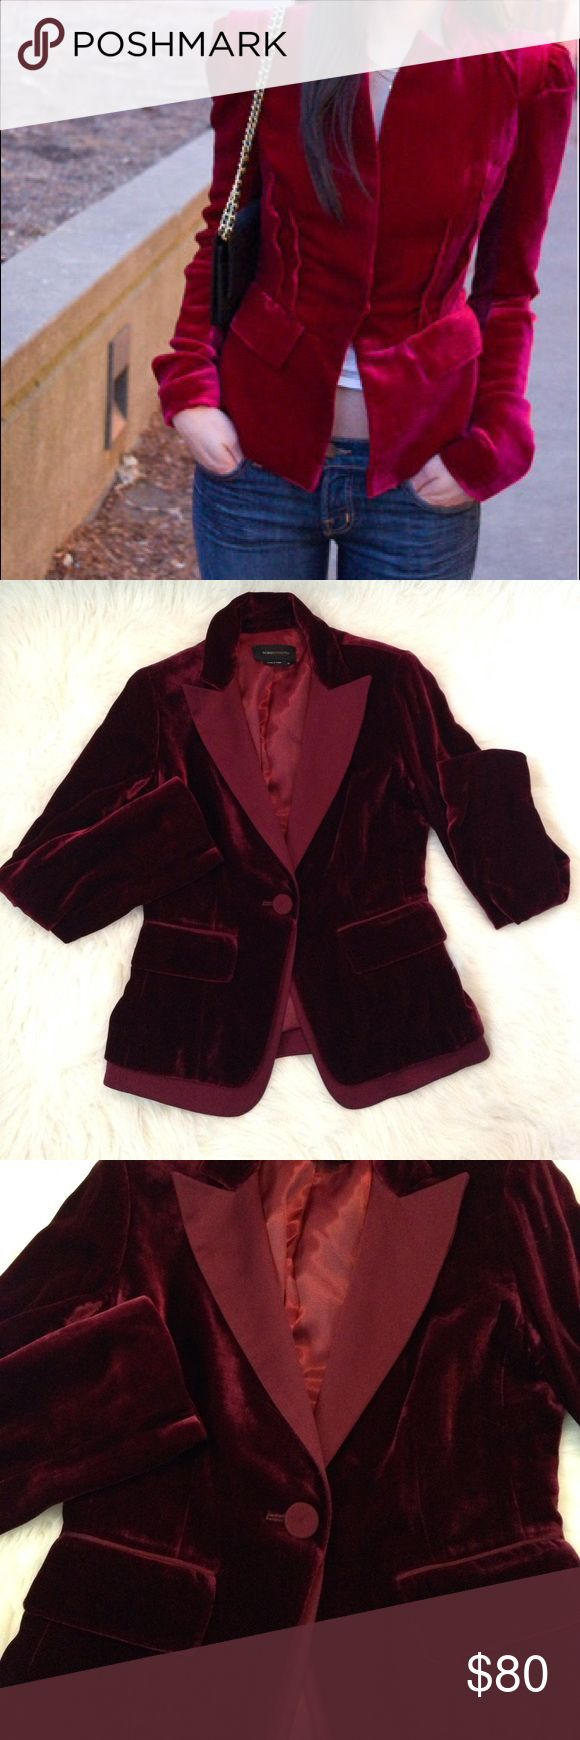 BCBGMaxazria red velvet blazer Rich and lux velvet deep red blazer. Everything about it is in perfect condition except last photo, just a tiny faint sleeve on the left outside of the cuff. BCBGMaxAzria Jackets & Coats Blazers